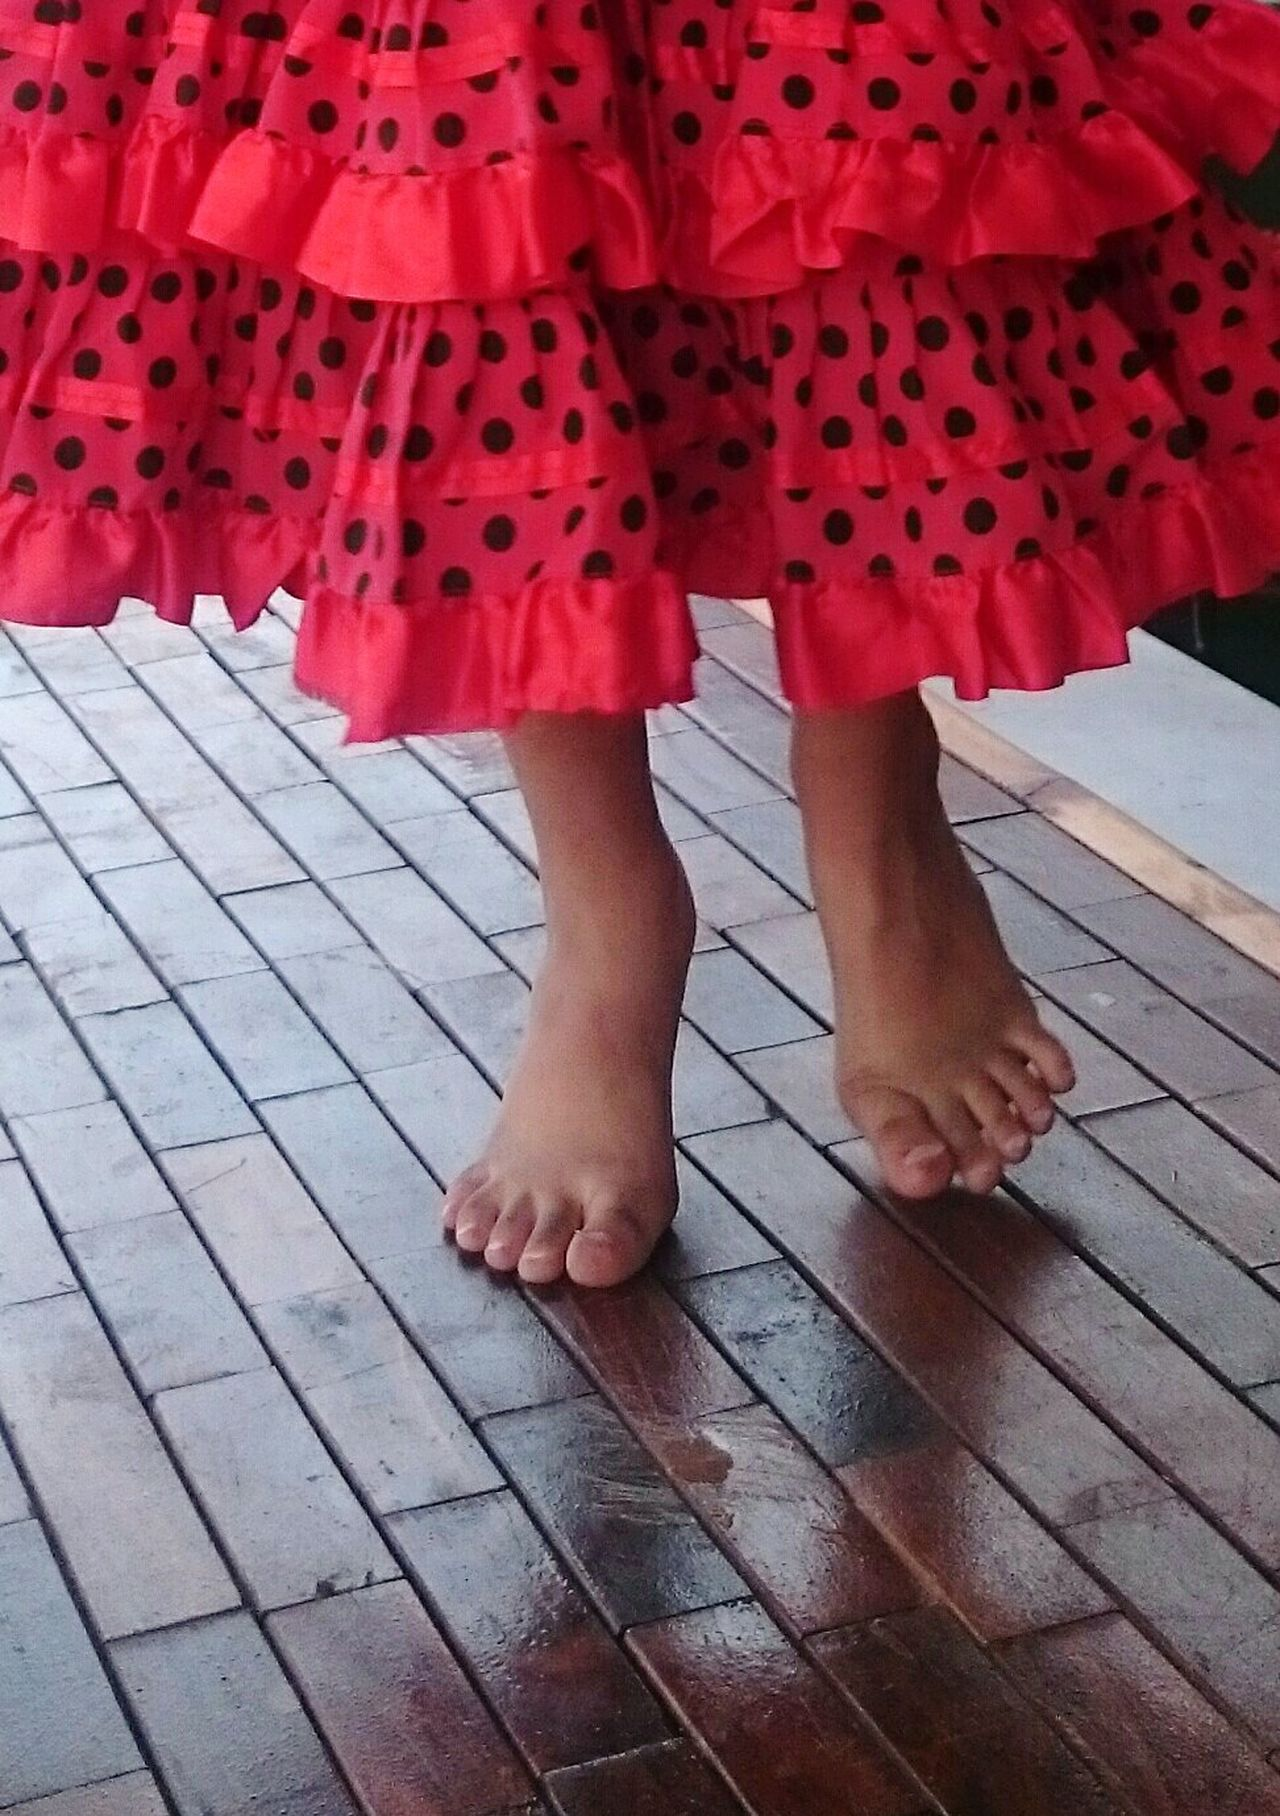 Human Leg Barefoot Human Foot Red Outdoors Street Photography Child Dancing Flaminco Girl Live For The Story